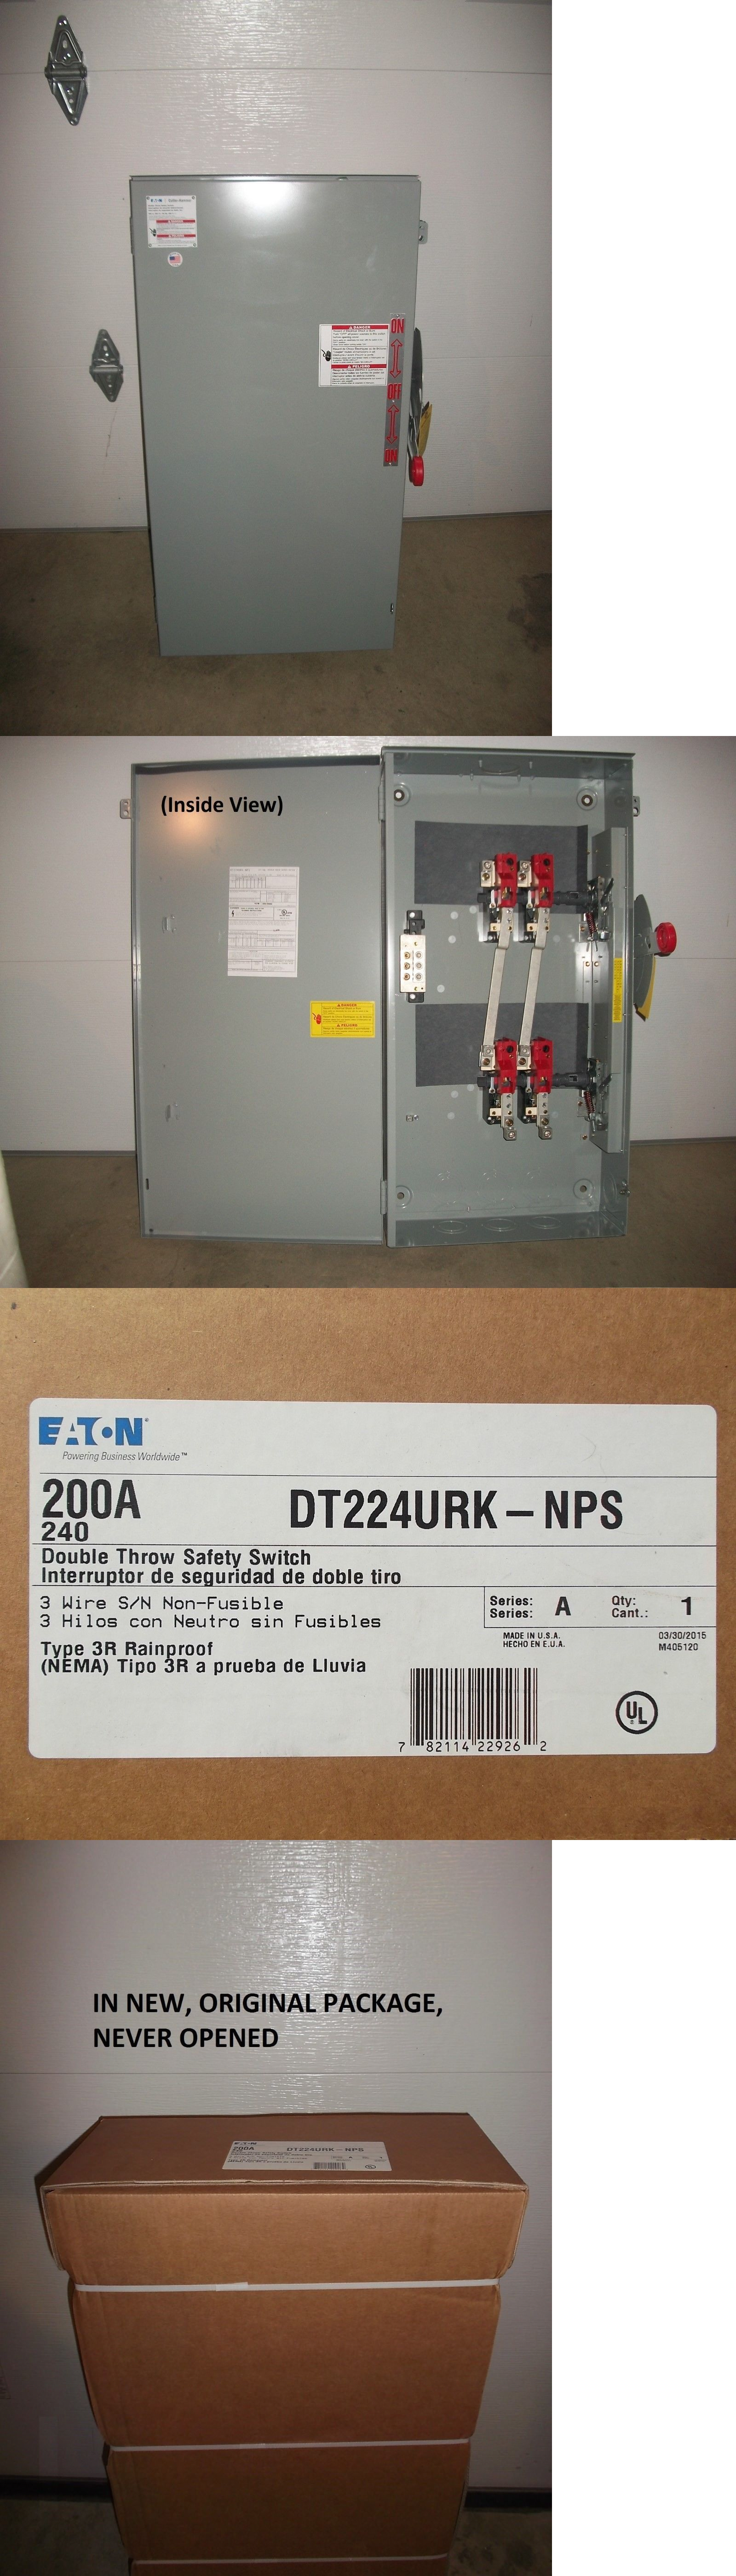 Circuit Breakers and Fuse Boxes 20596 Eaton Double Throw